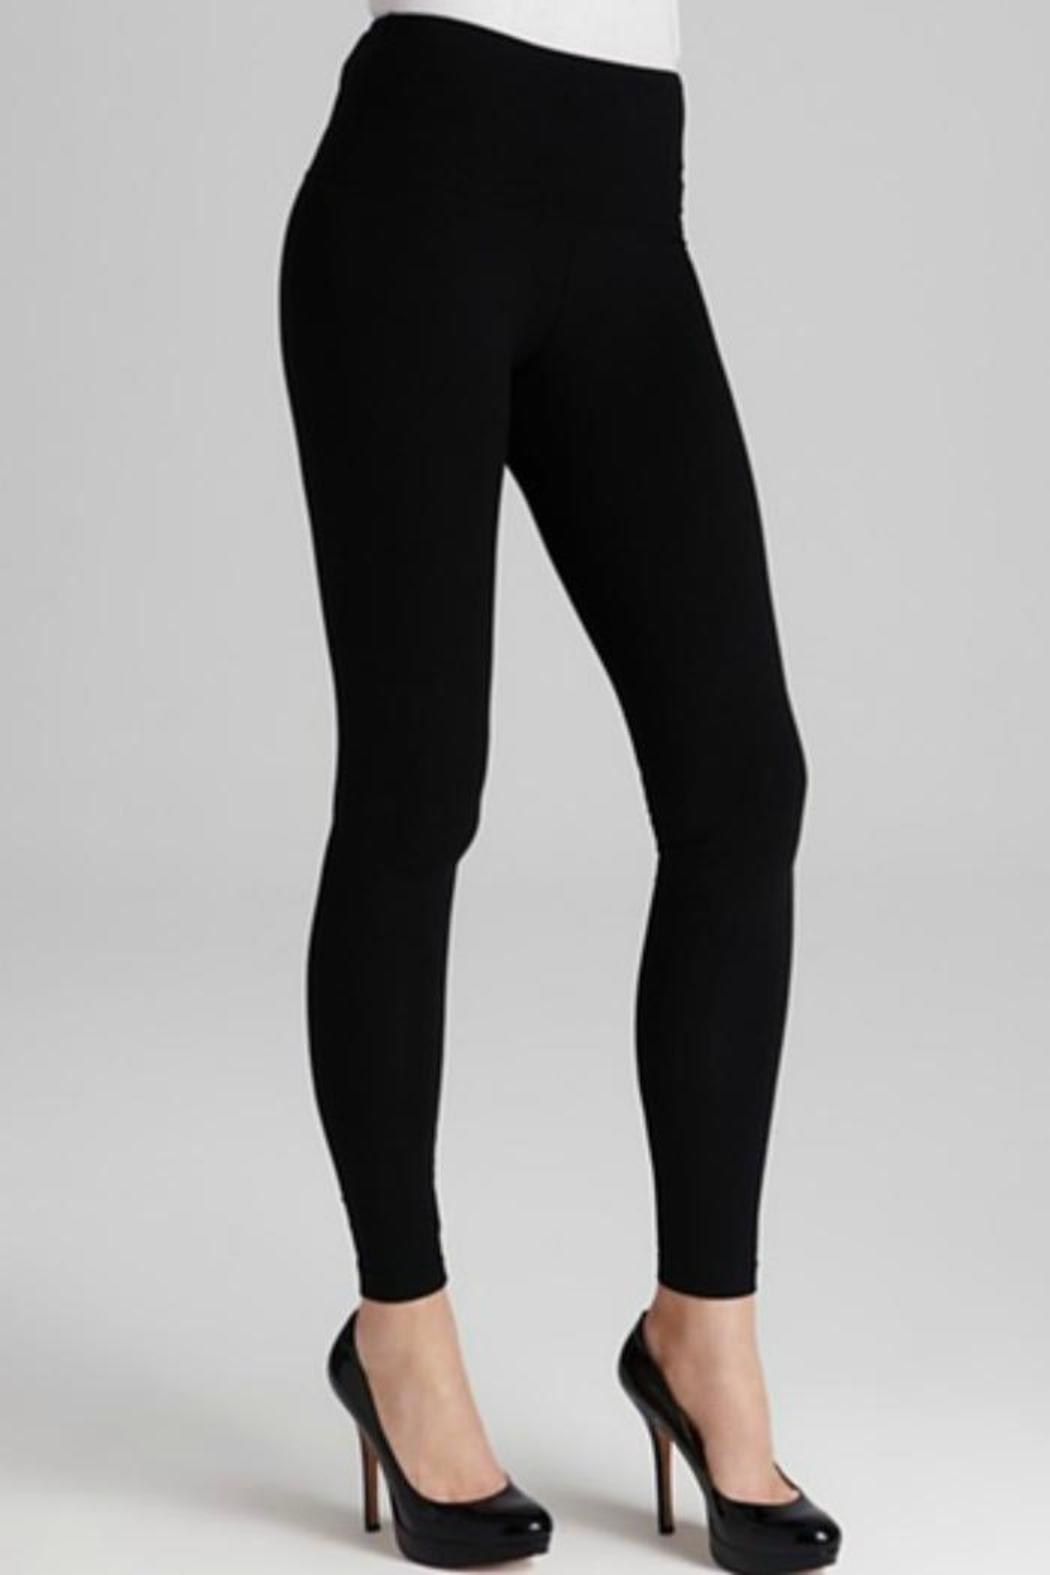 Decorative Accessories For The Home Cheryl Creations Solid Black Legging From New York City By